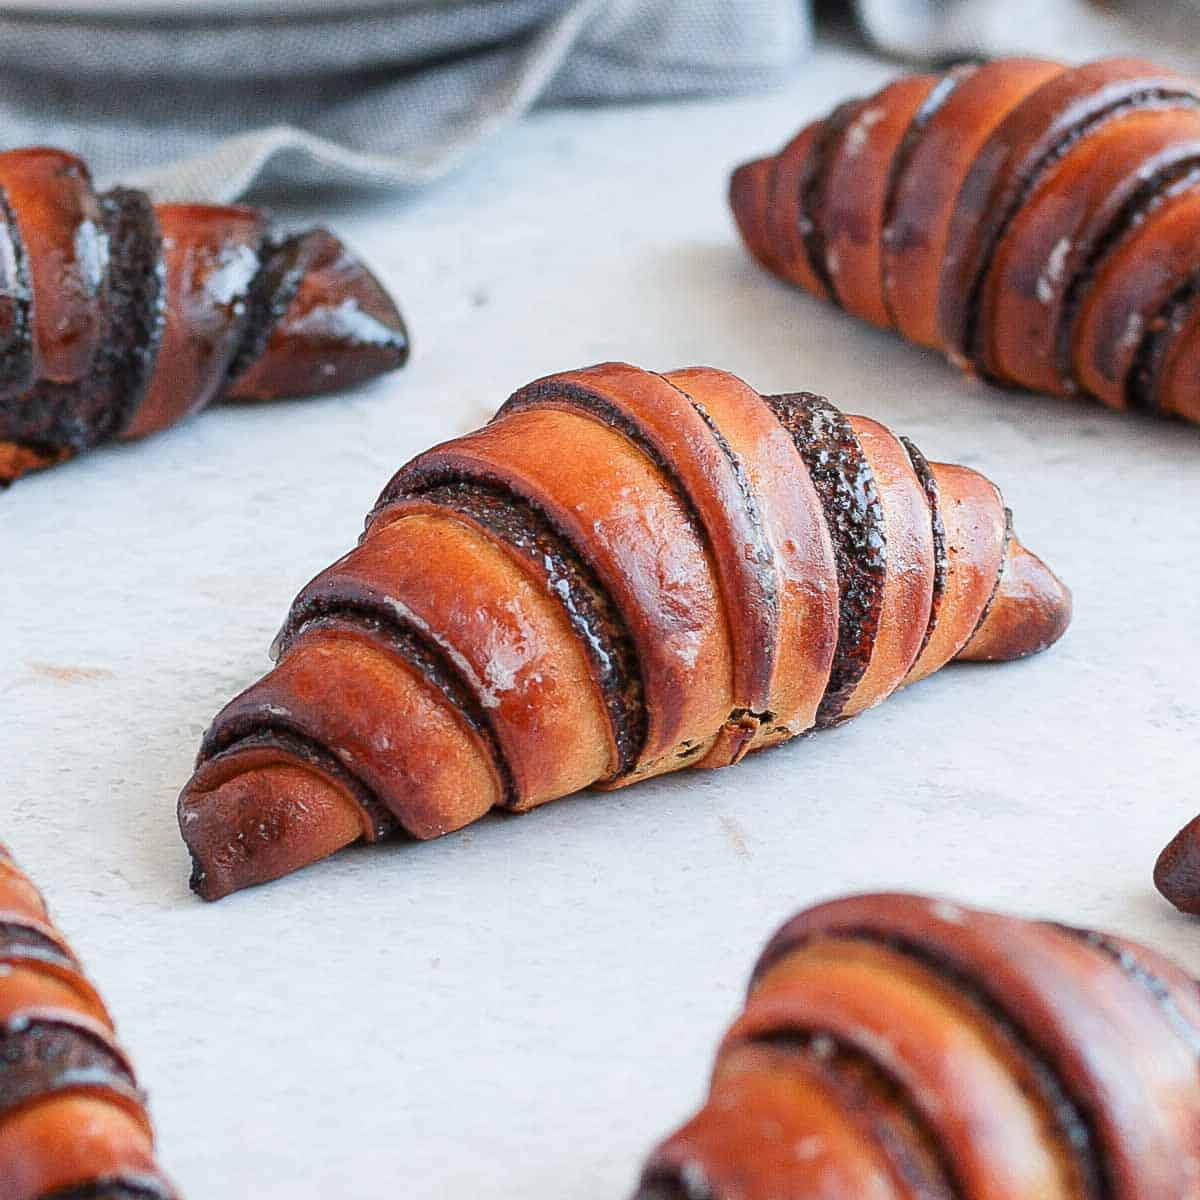 Close up on one chocolate rugelach on a grey surface.